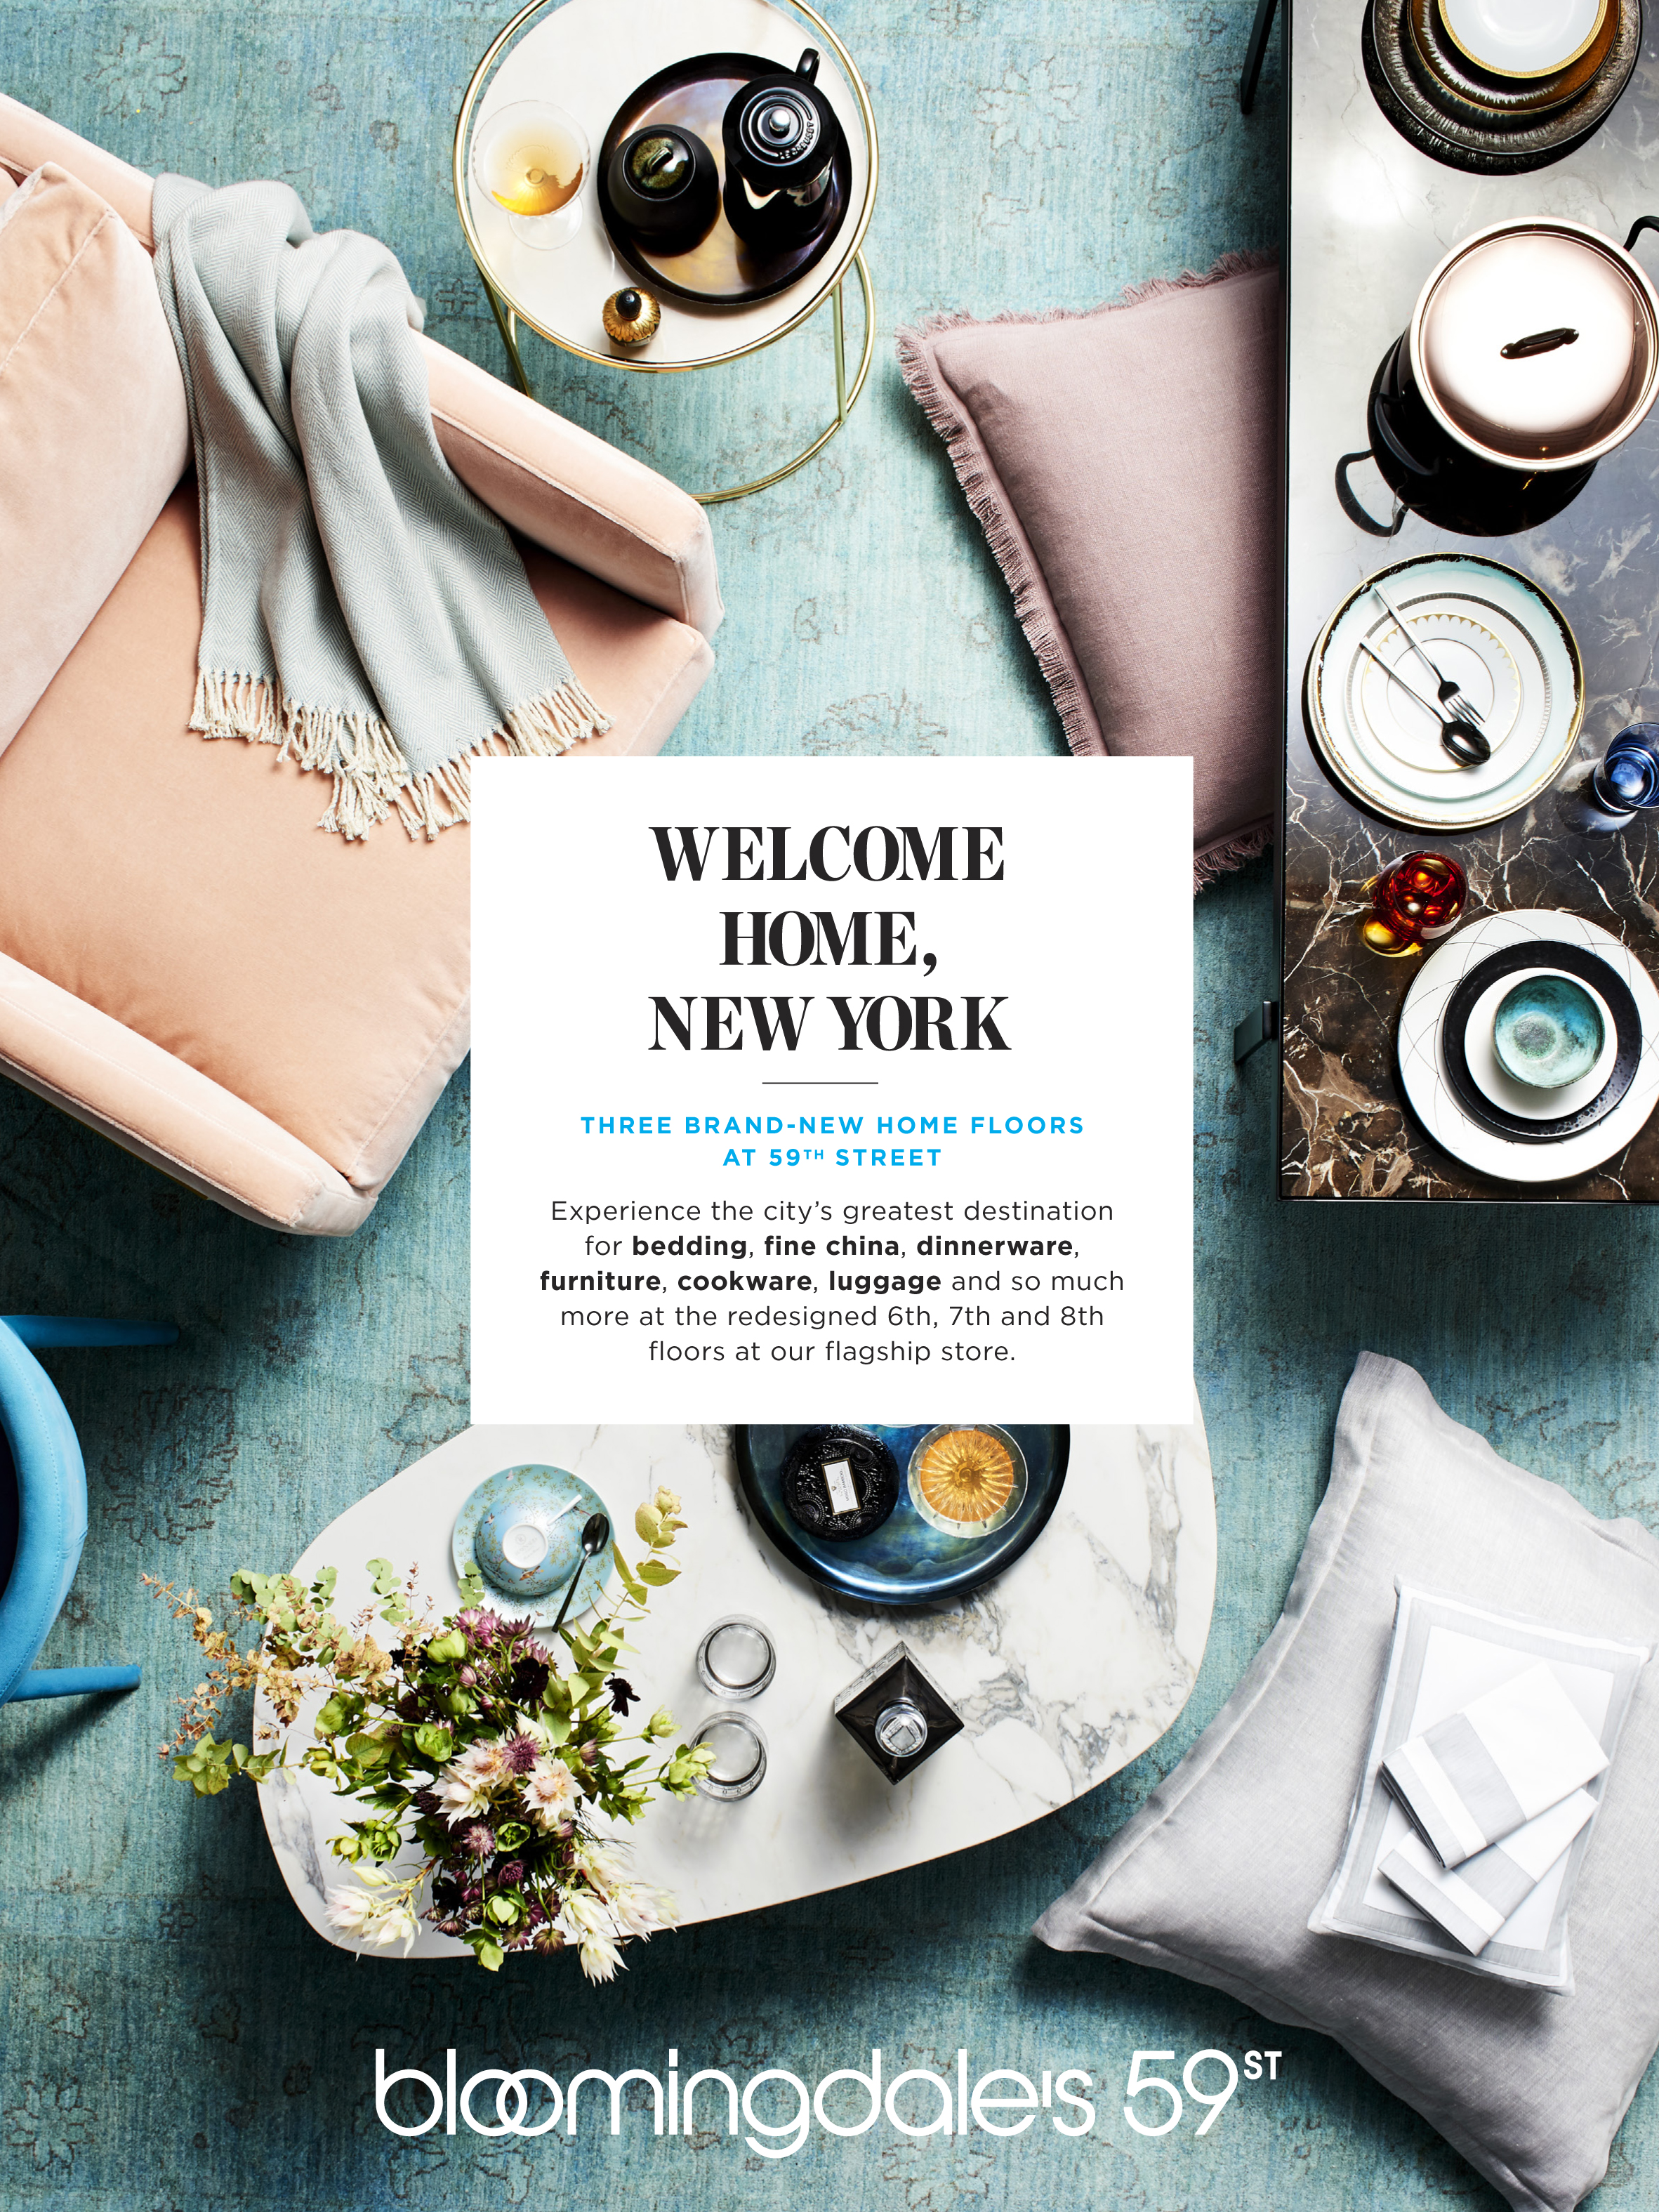 ER_Bloomies_NYHome_2017-1